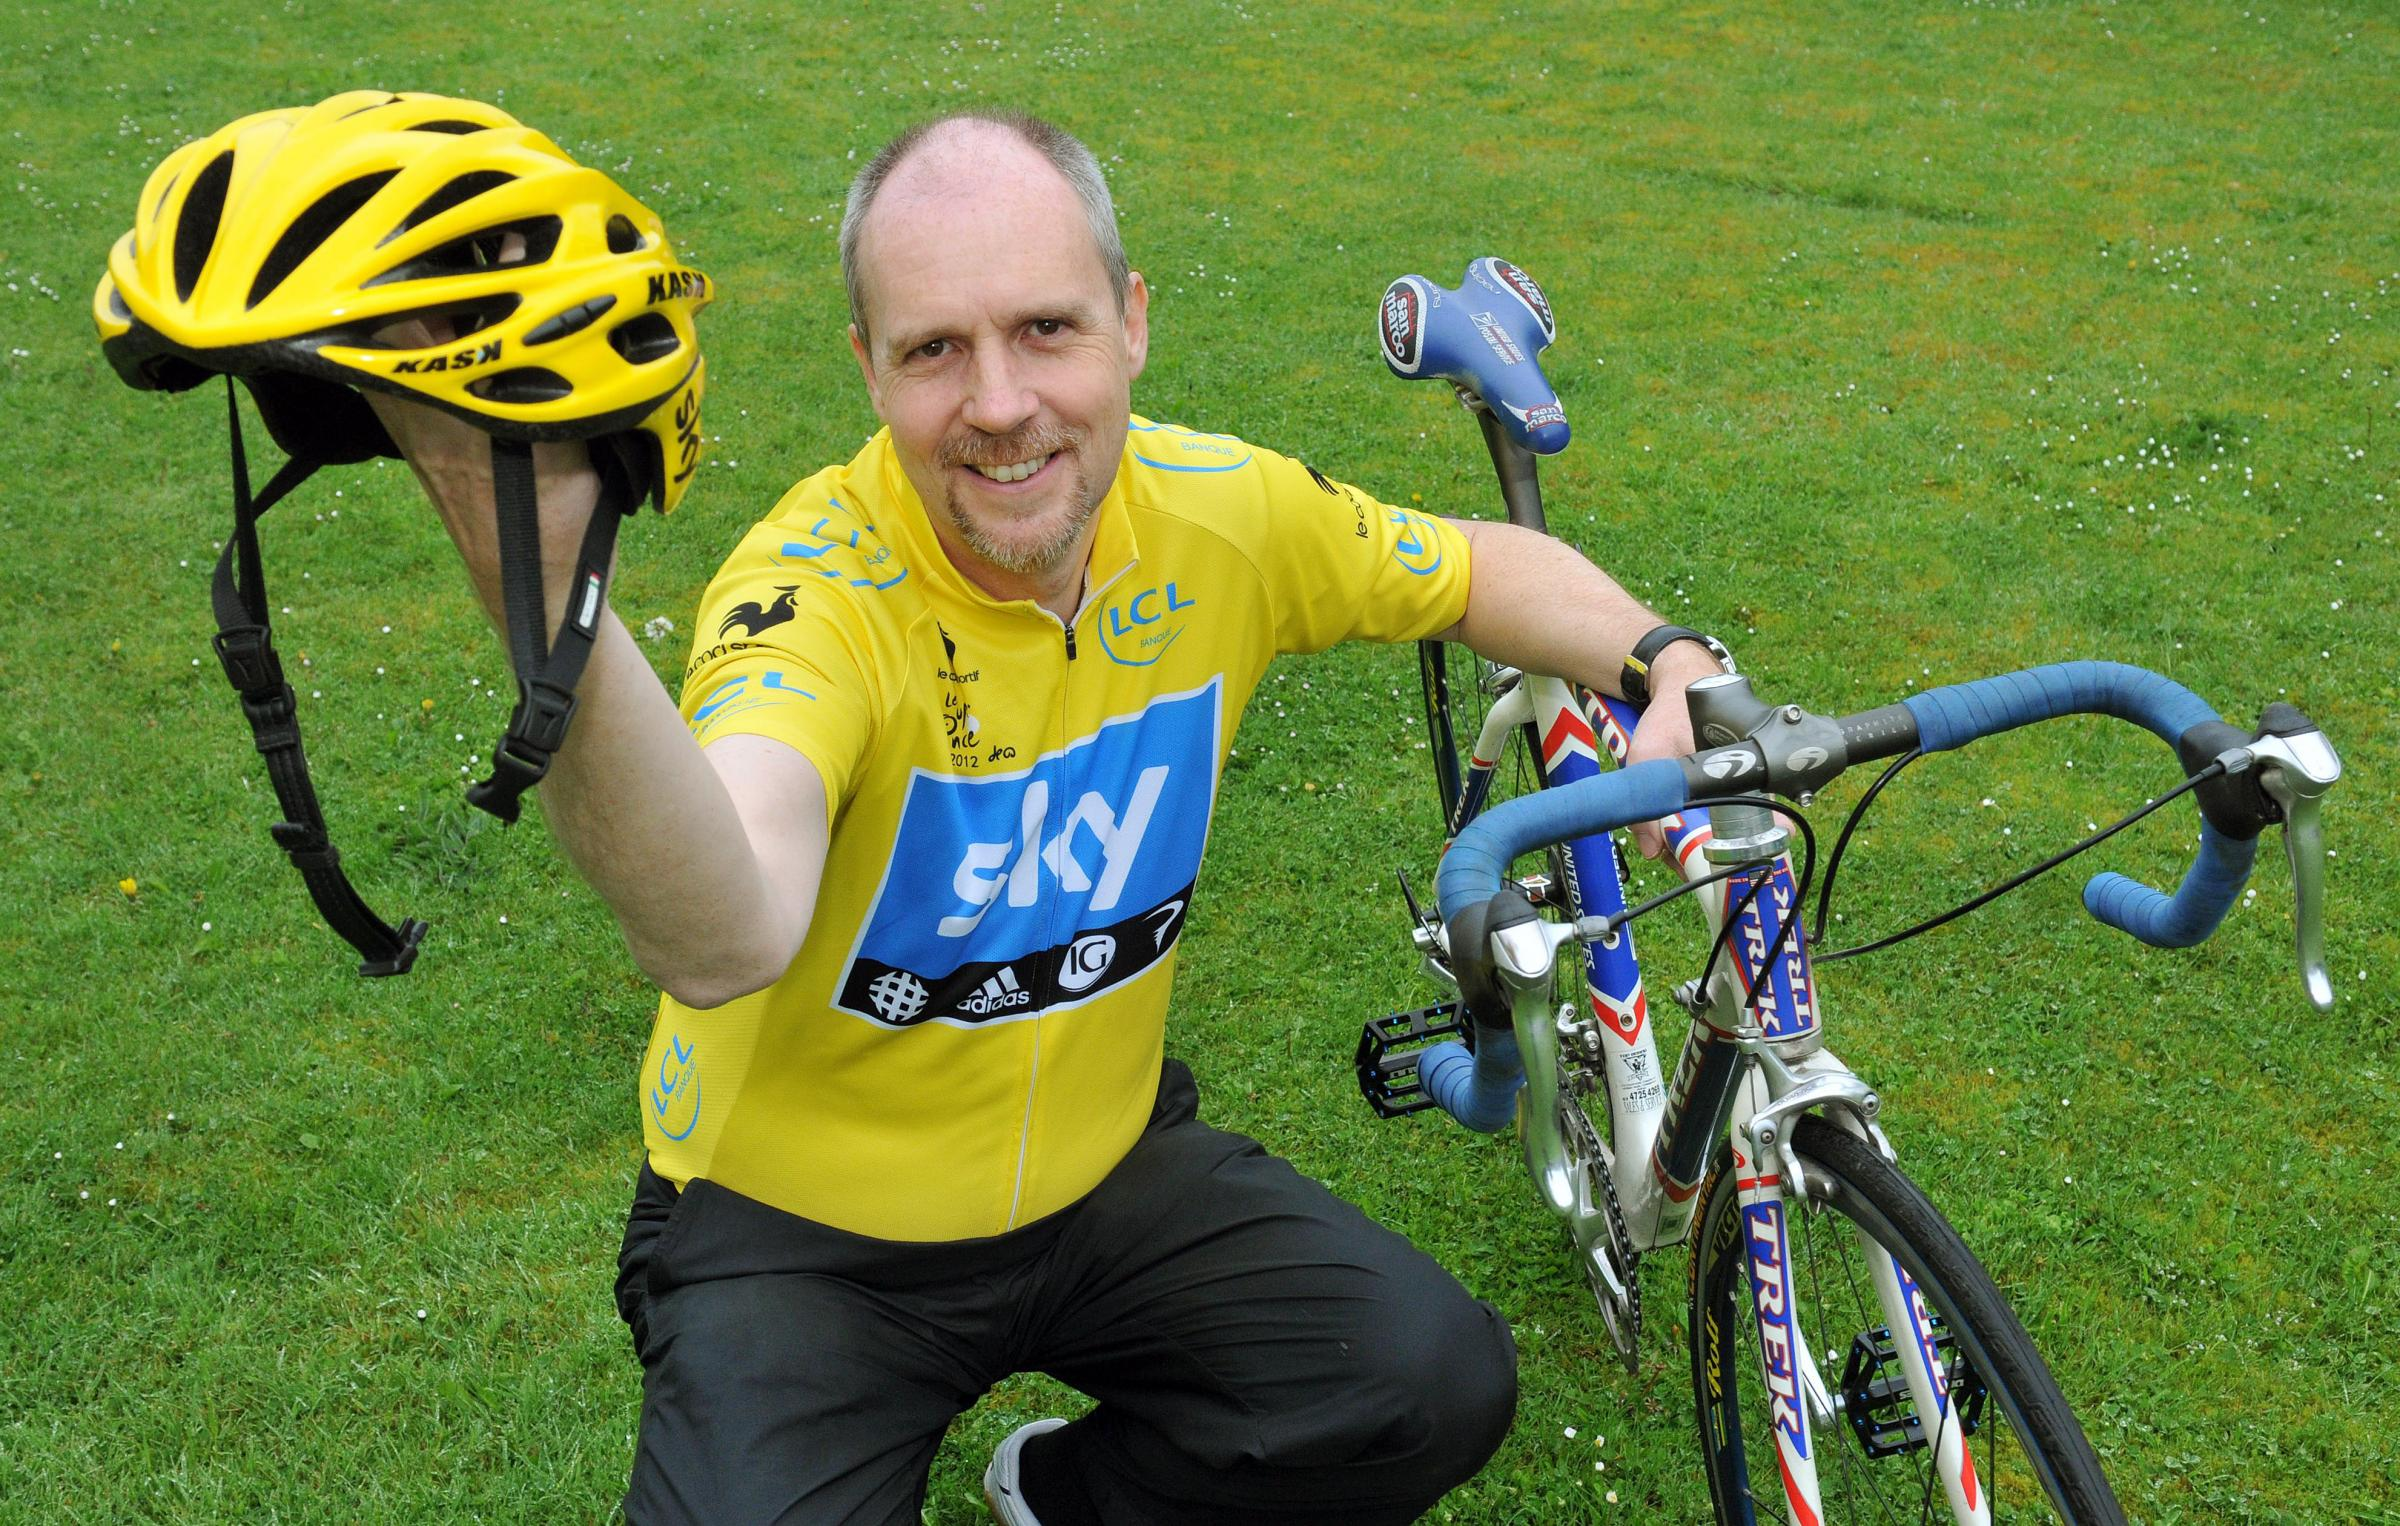 Author Andy Seed holds the cycling helmet worn by last year's winner of the Tour de France Chris Froome